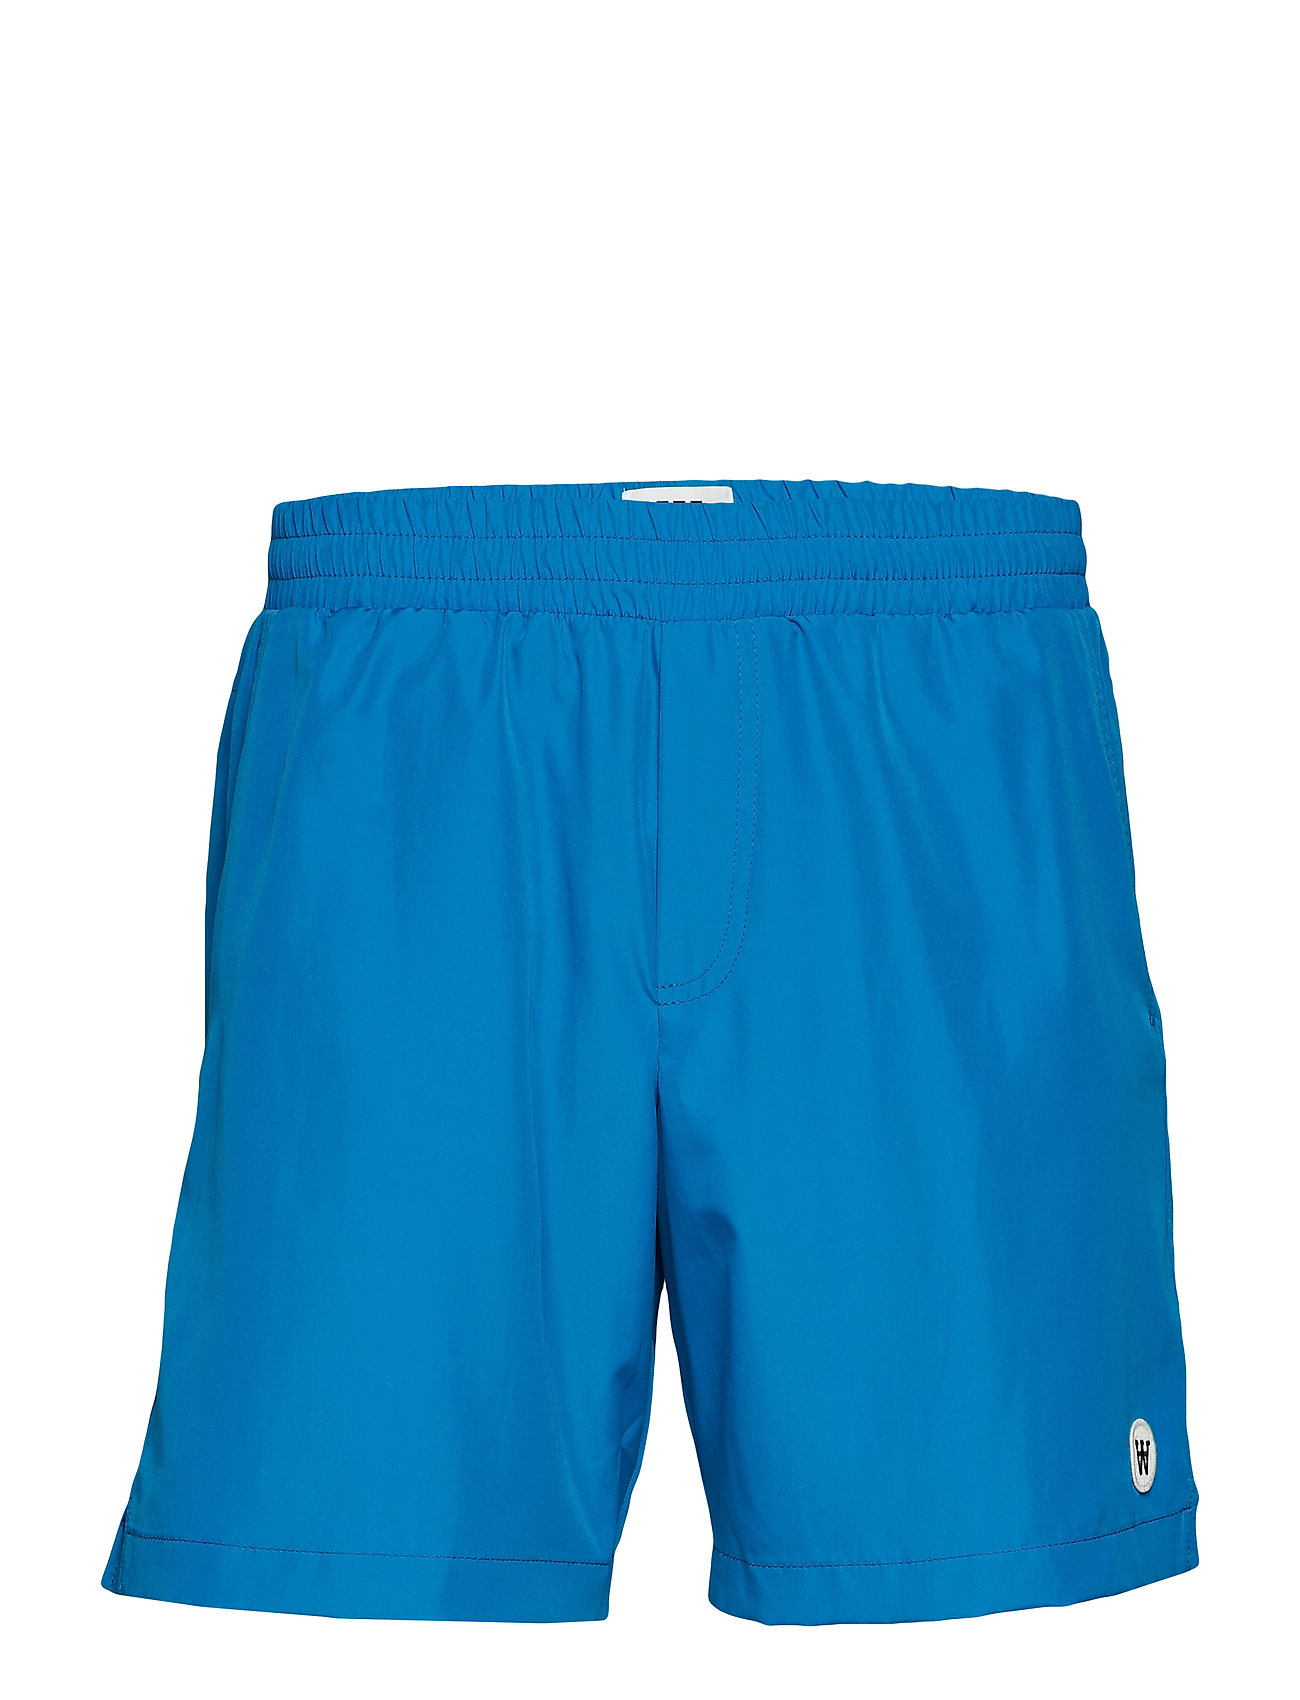 WOOD WOOD Roy Swim Shorts Badeshorts Blau WOOD WOOD